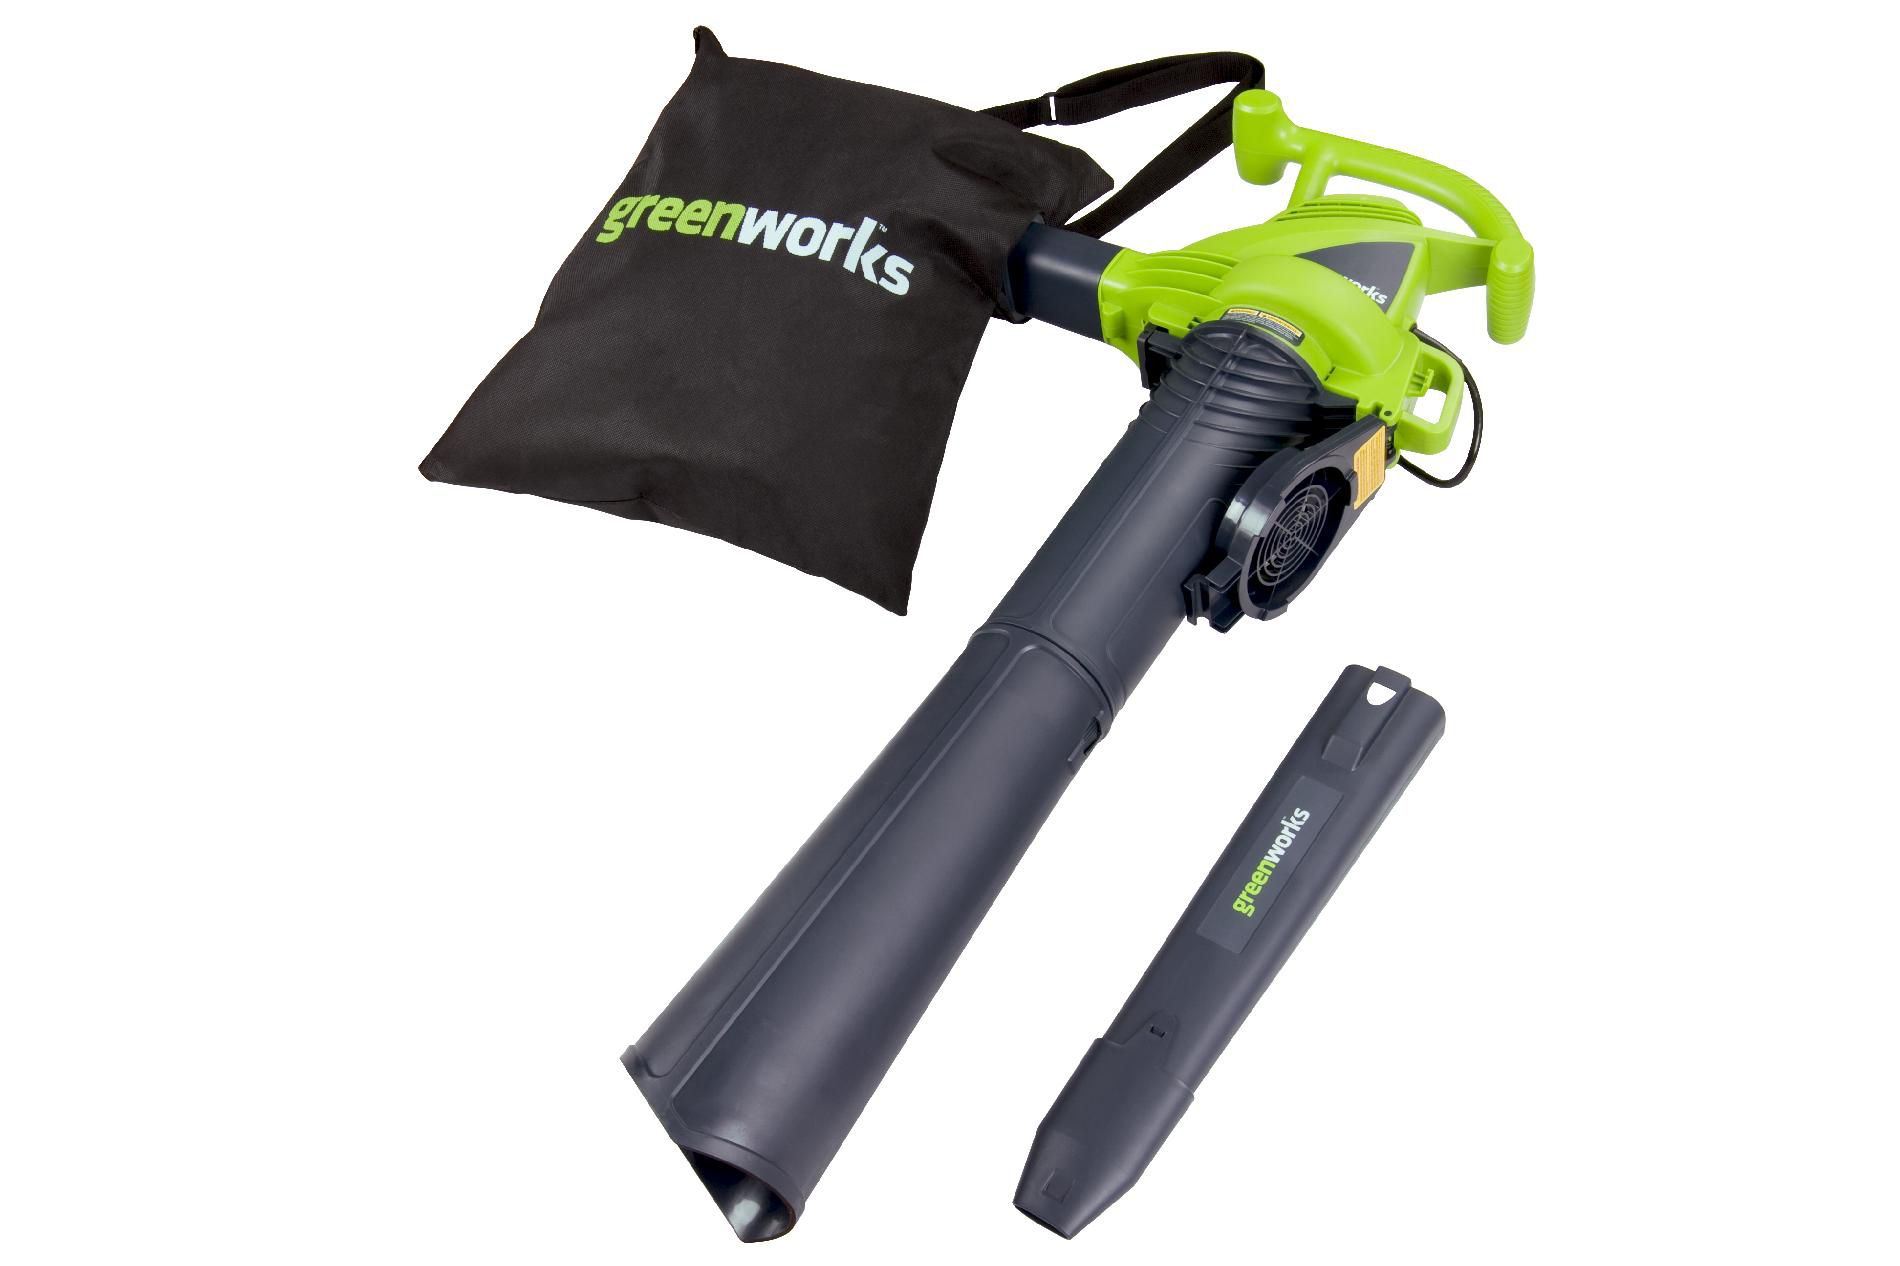 Greenworks 12 AH Variable Speed Electric Blower